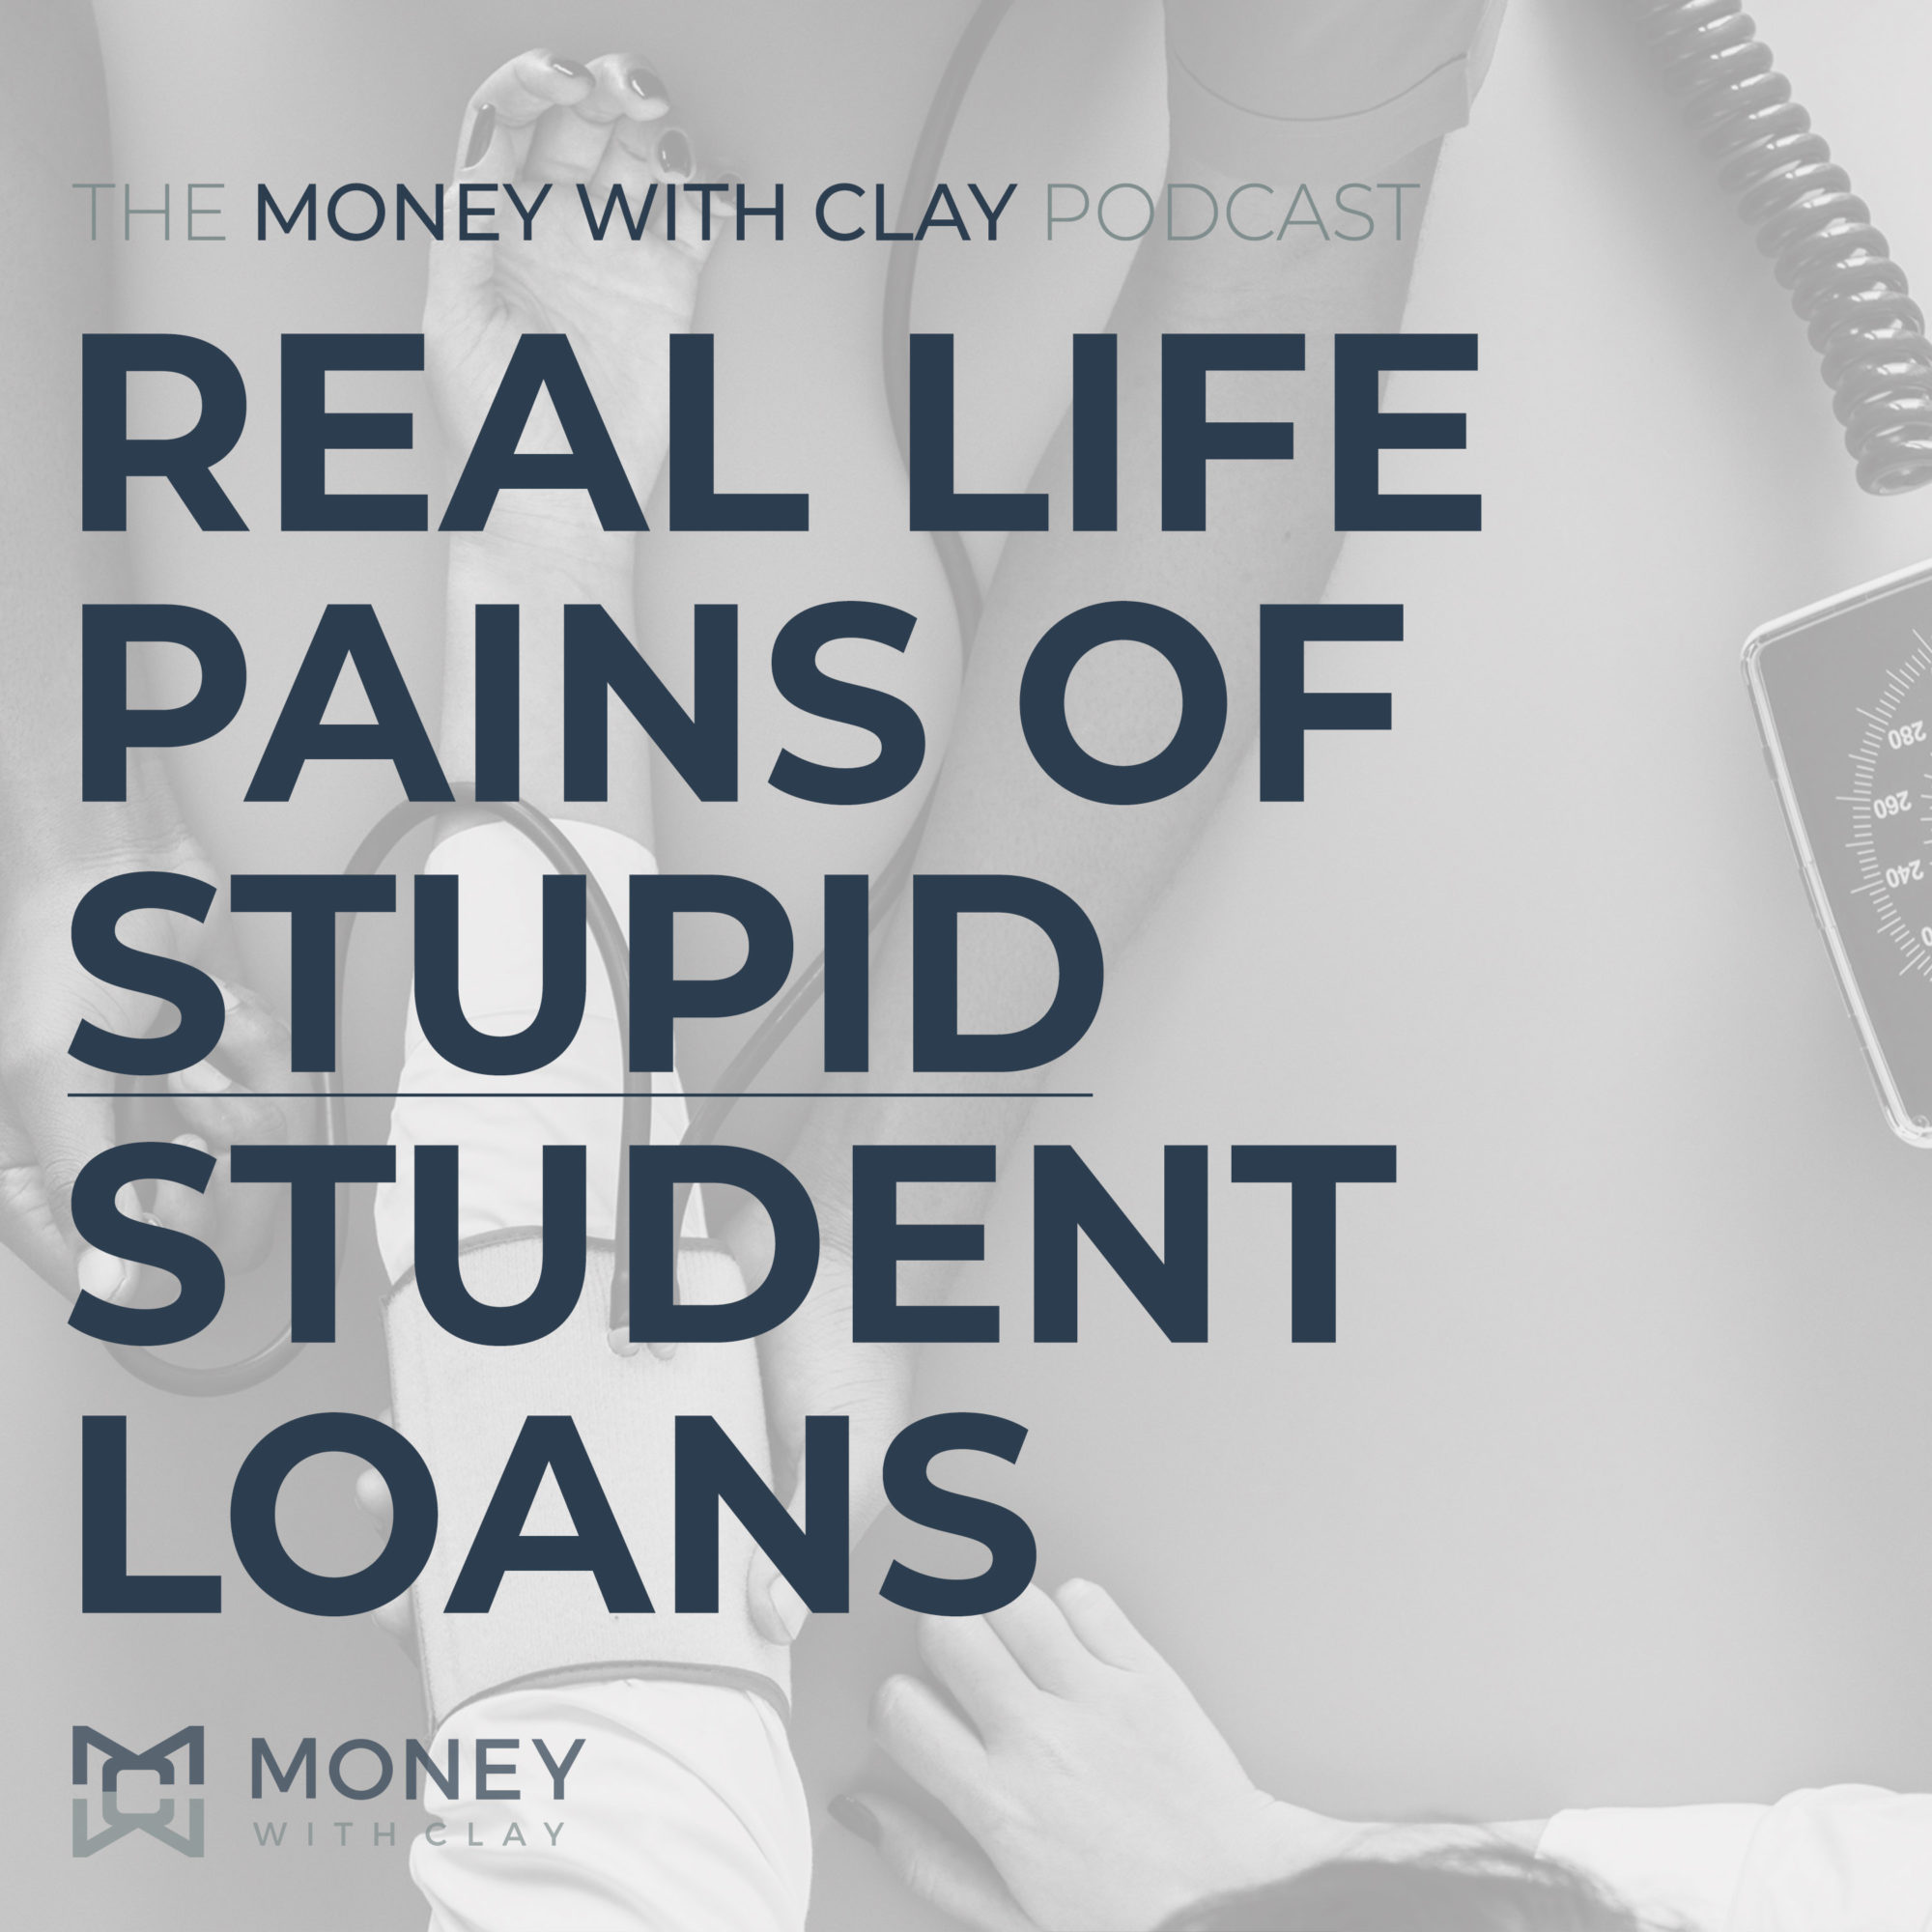 Real Life Pains of Stupid Student Loans